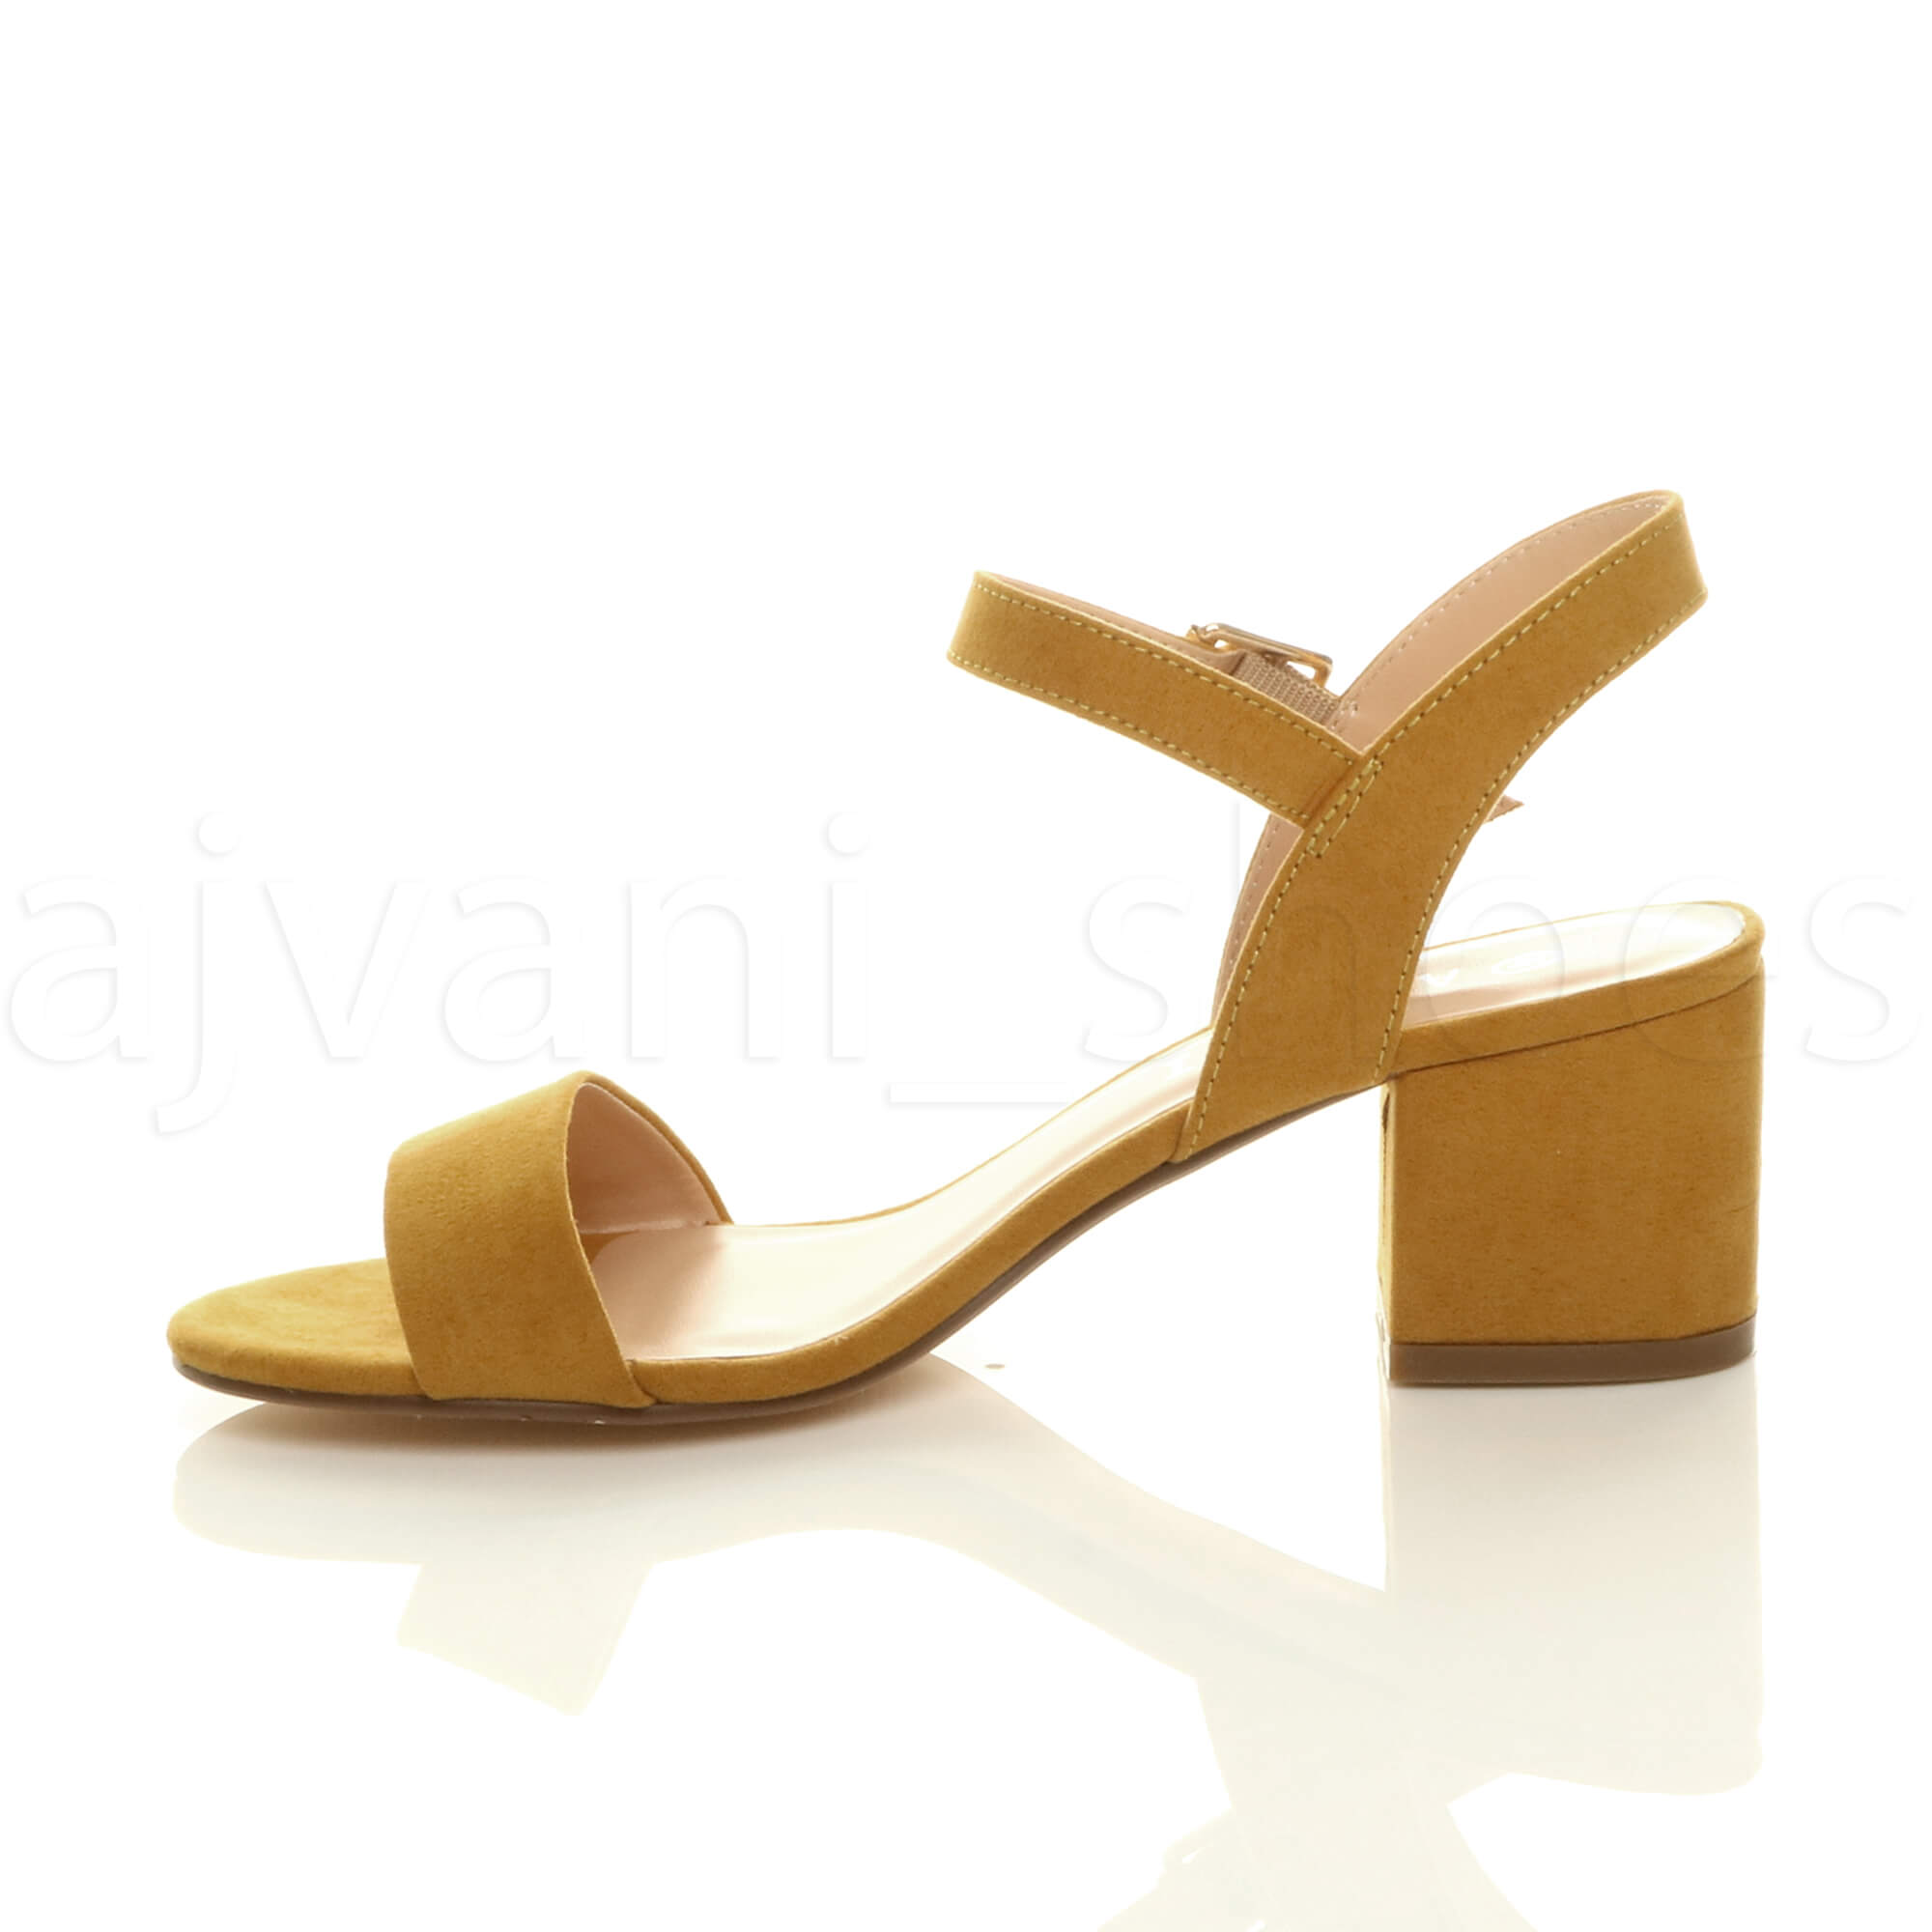 WOMENS-LADIES-MID-LOW-BLOCK-HEEL-PEEP-TOE-ANKLE-STRAP-STRAPPY-PARTY-SANDALS-SIZE thumbnail 76